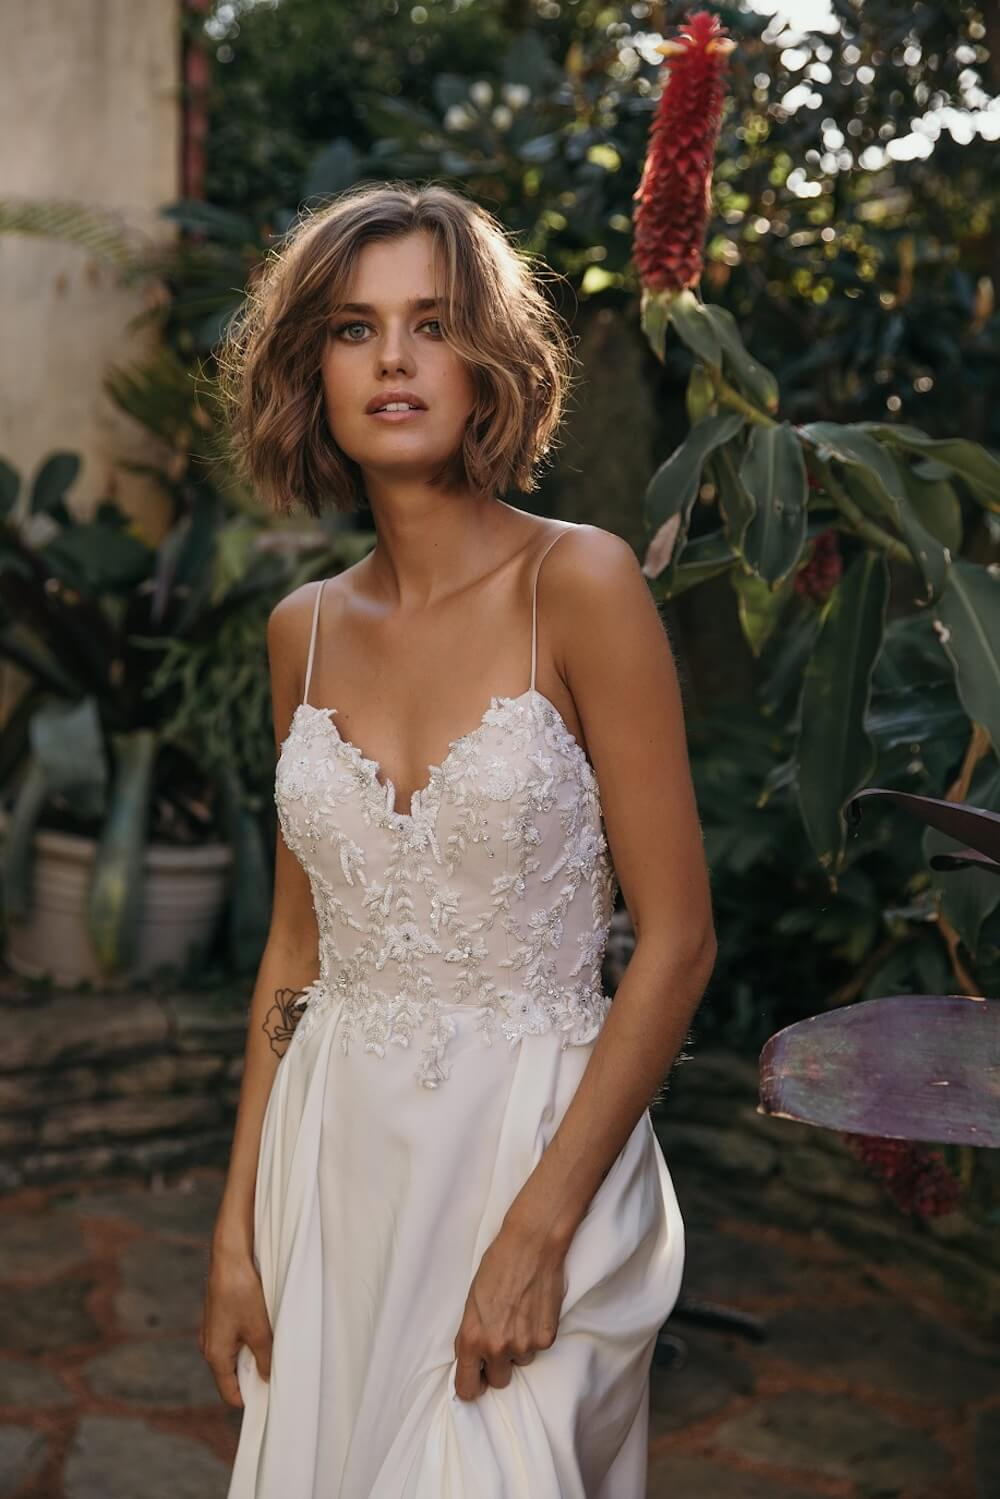 Summer Rain wedding dress by Jennifer Go Bridal featured on LOVE FIND CO.